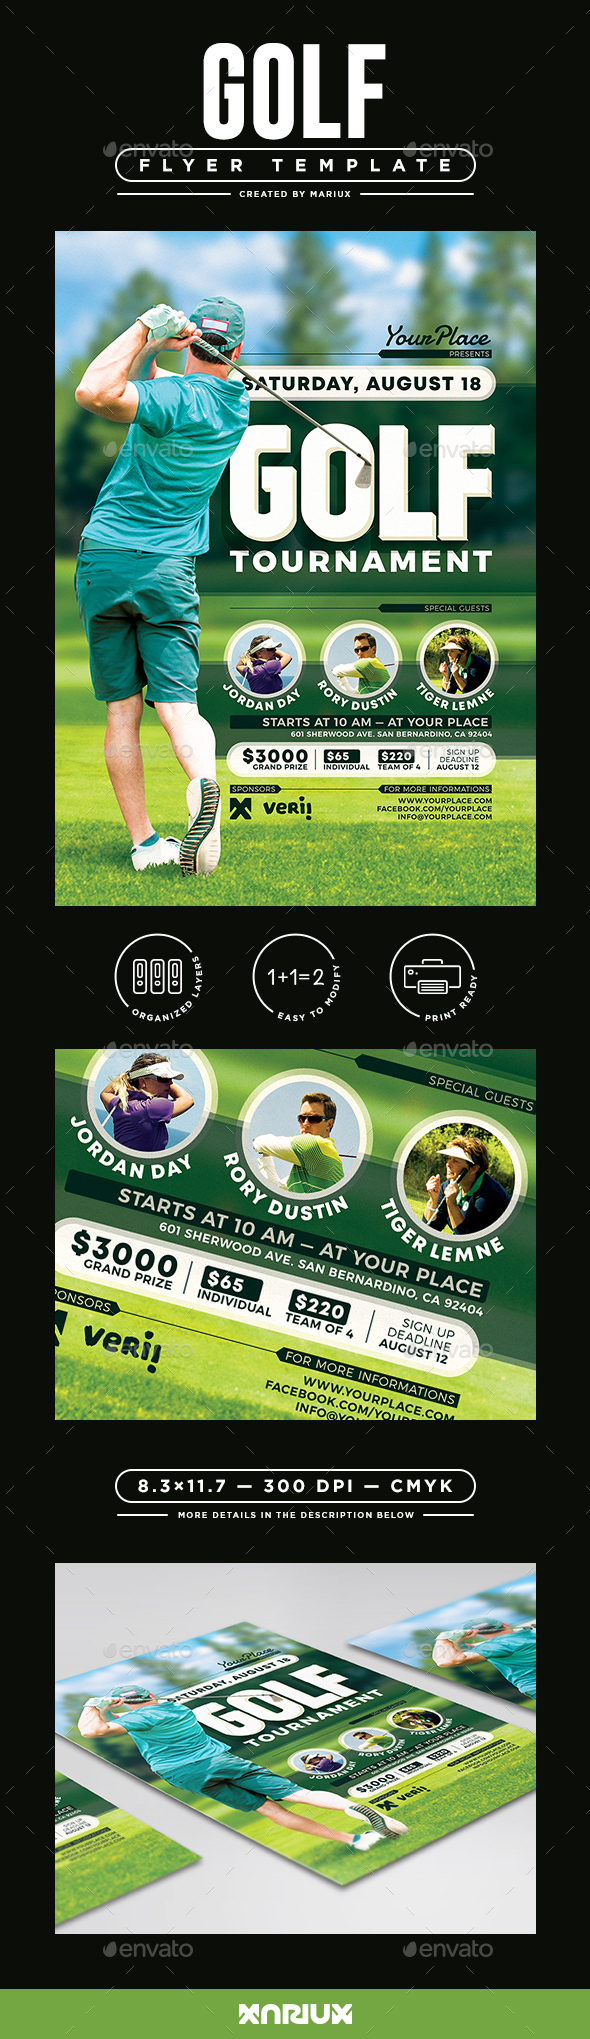 Golf Tournament Flyer/Poster - Sports Events